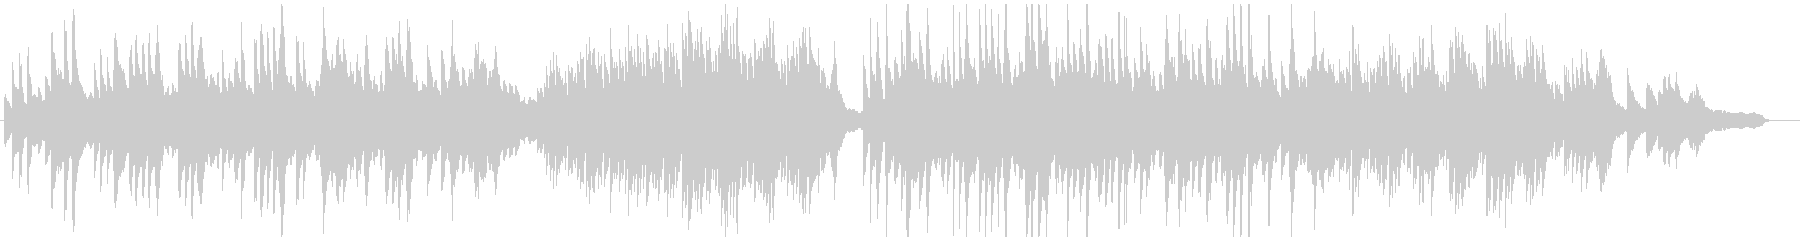 Corporate VP / Moist and moving piano waltz's unreproduced waveform